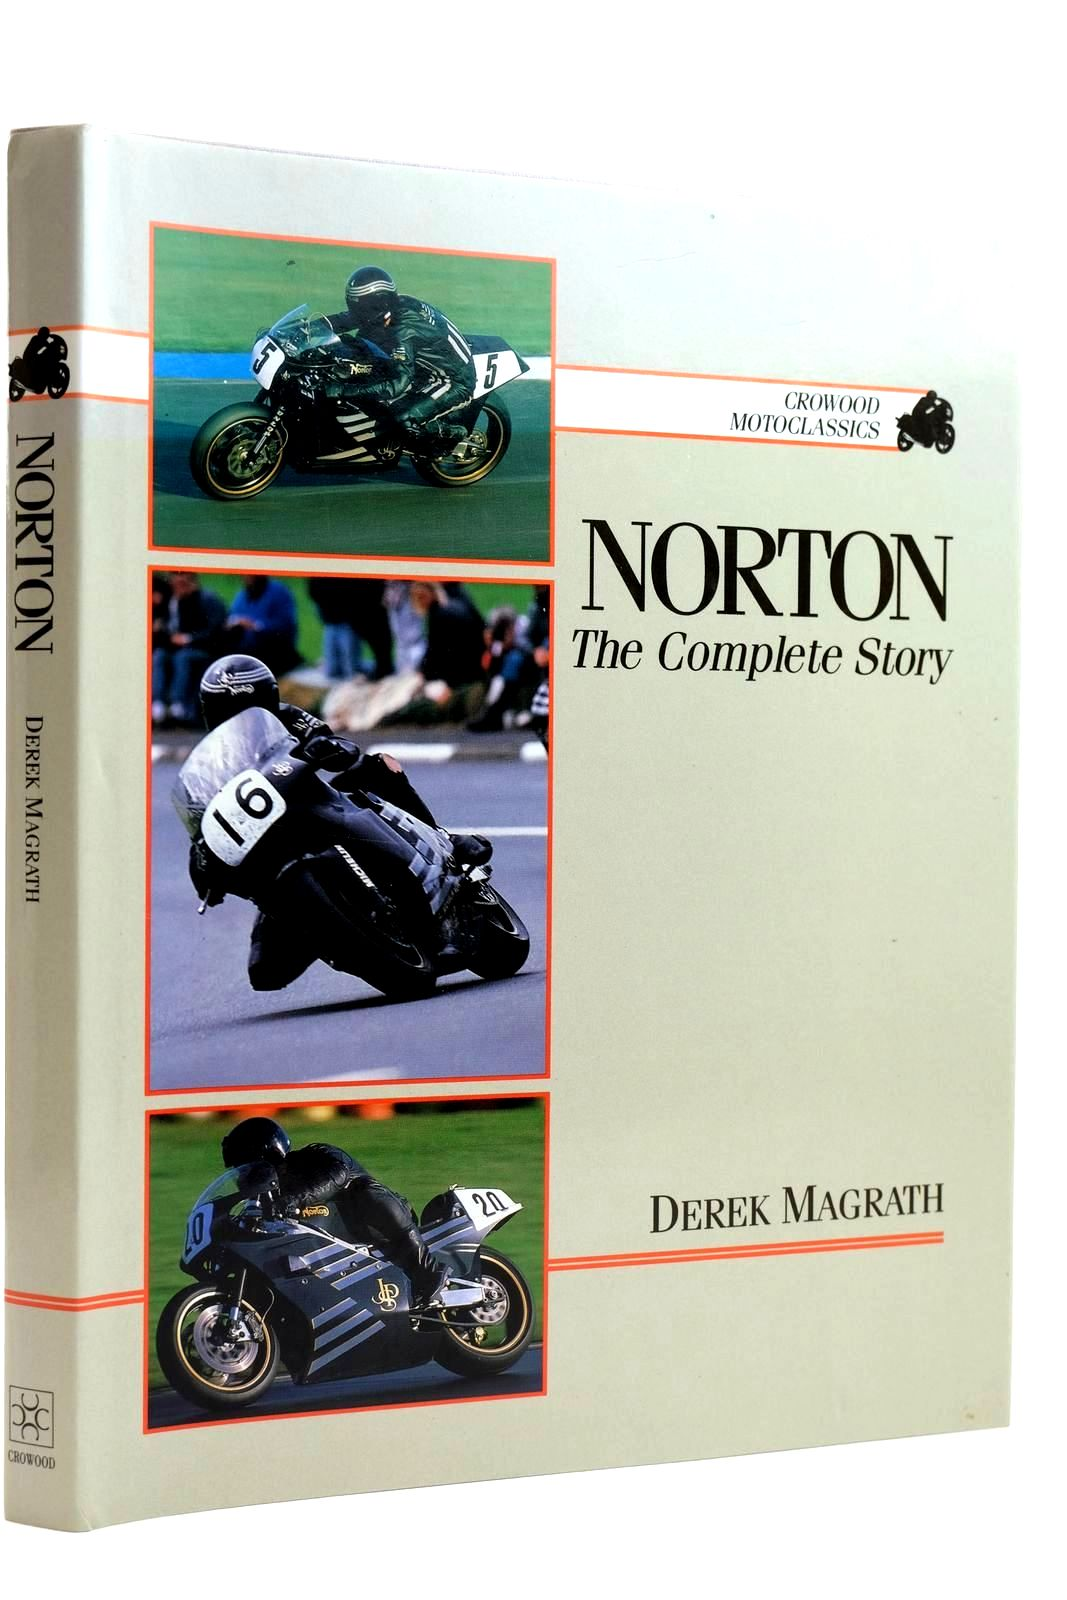 Photo of NORTON: THE COMPLETE STORY written by Macgrath, Derek published by The Crowood Press (STOCK CODE: 2131991)  for sale by Stella & Rose's Books